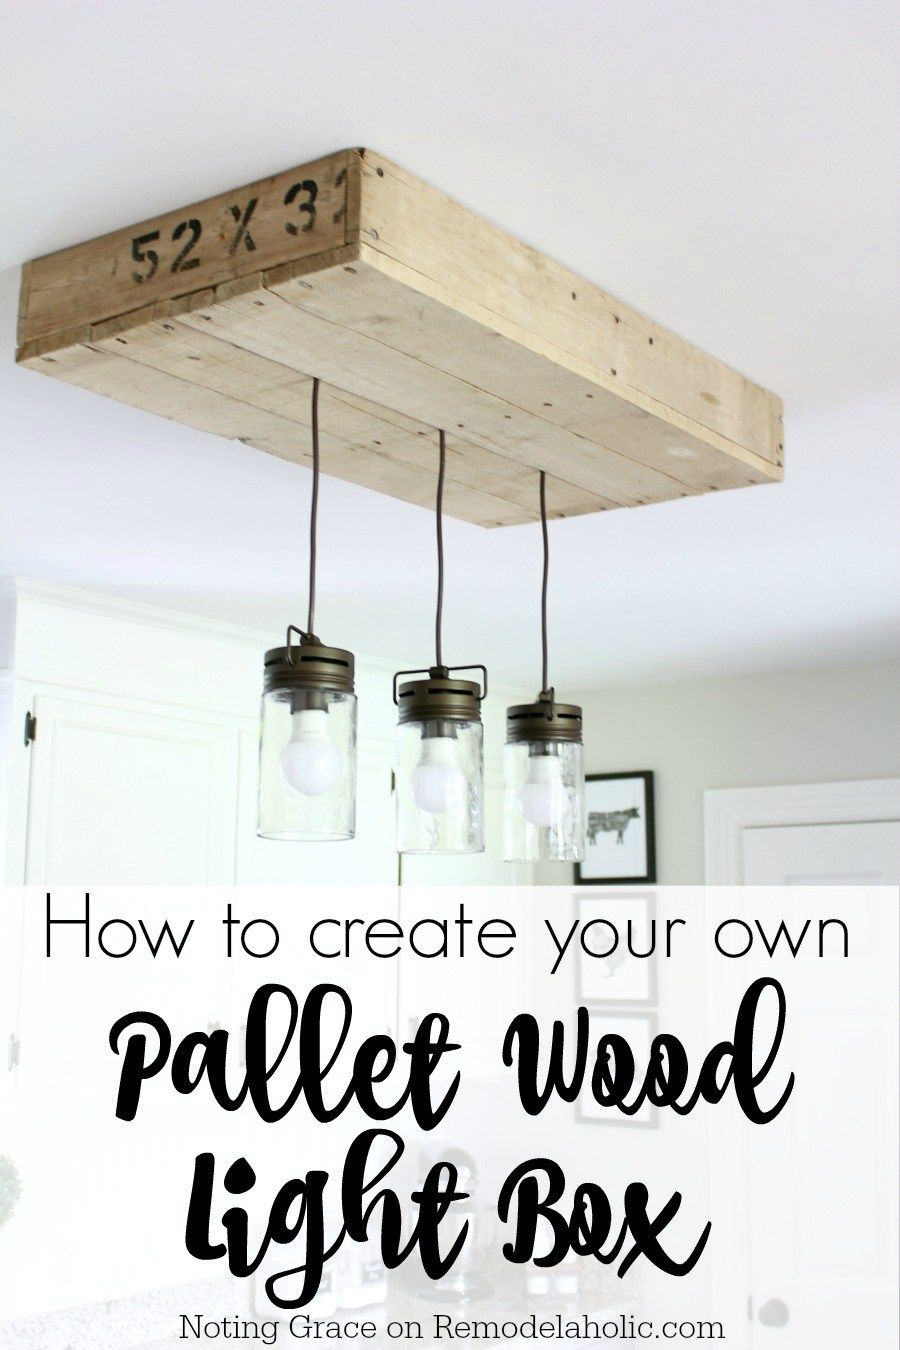 Diy Pallet Wood Light Box Noting Grace